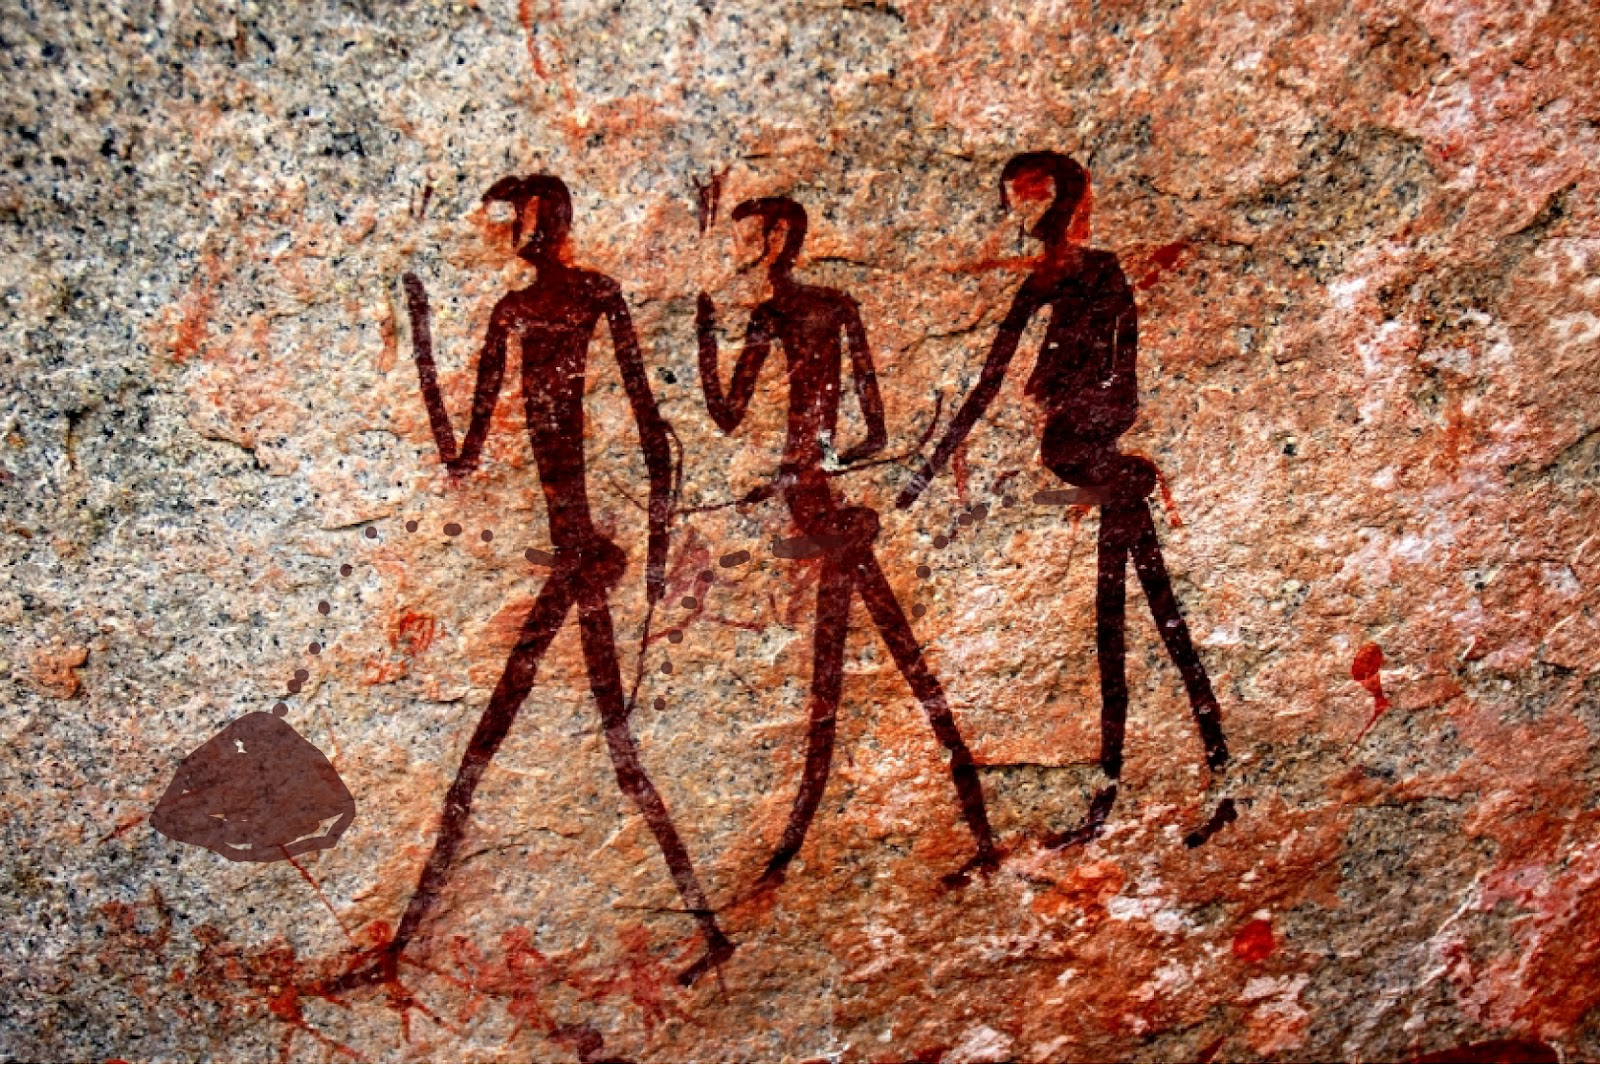 From our earliest days, we passed time telling stories and drawing on the cave walls.